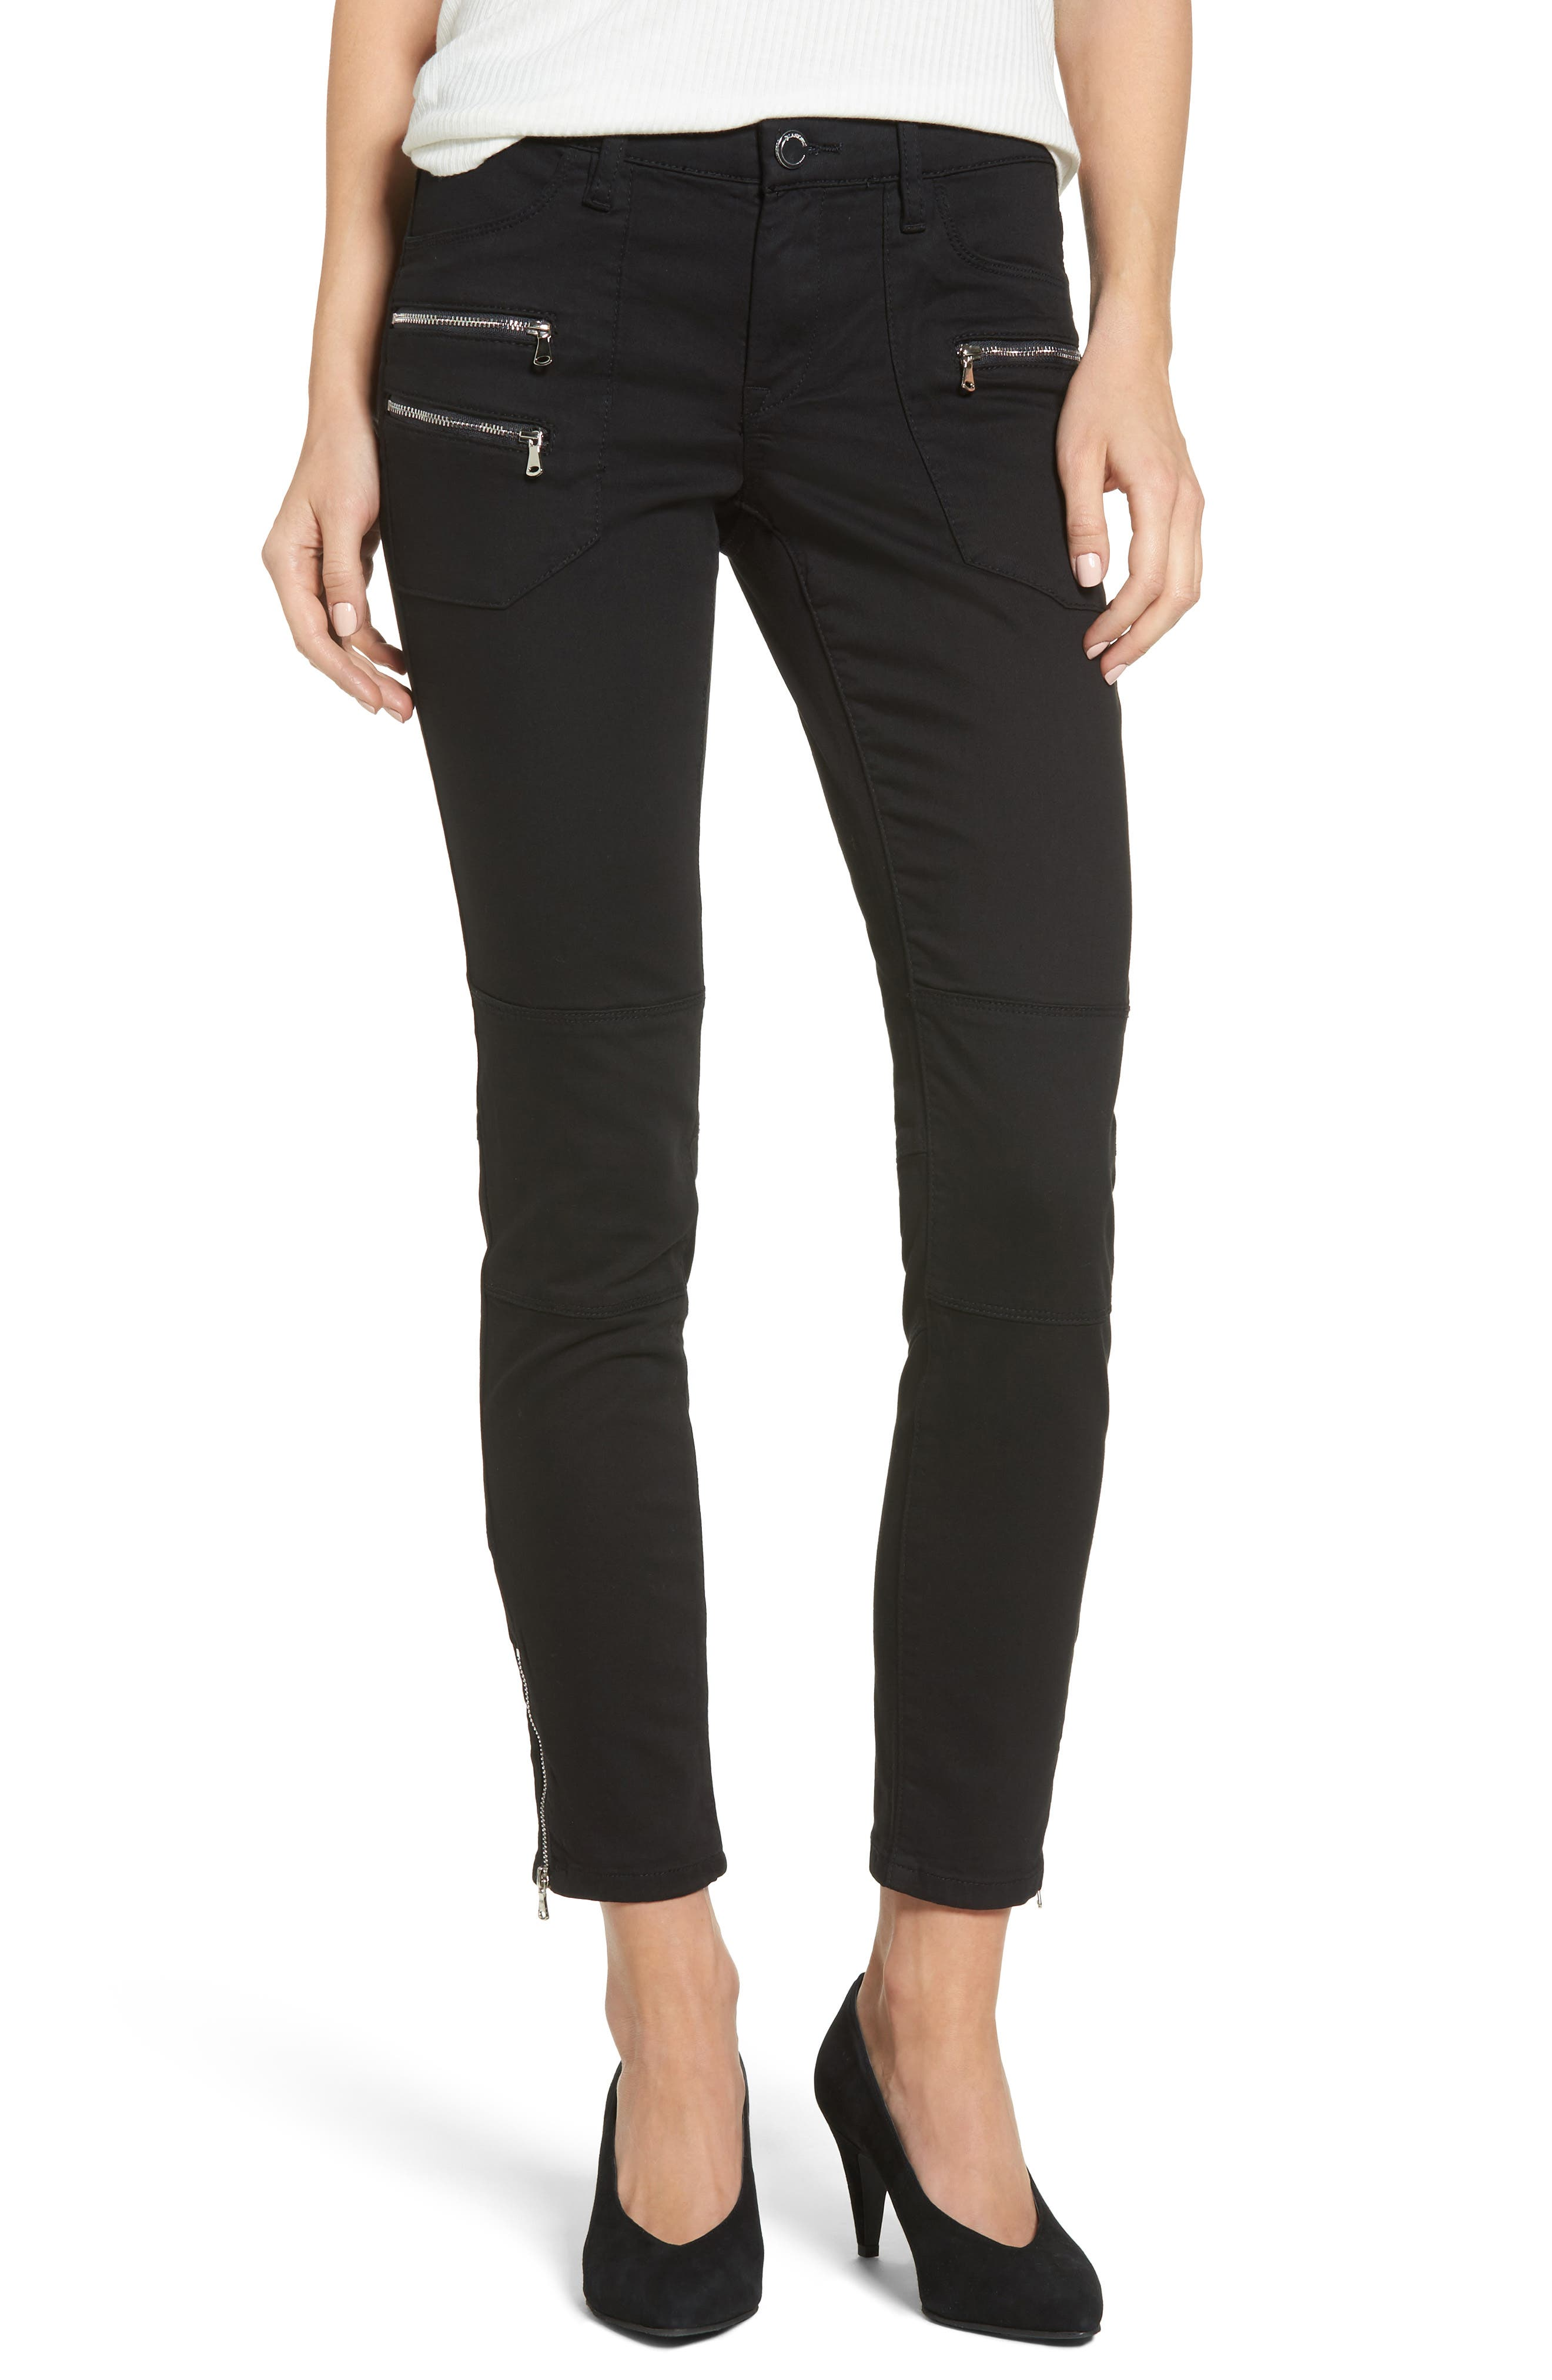 BLANKNYC Private Party Skinny Jeans